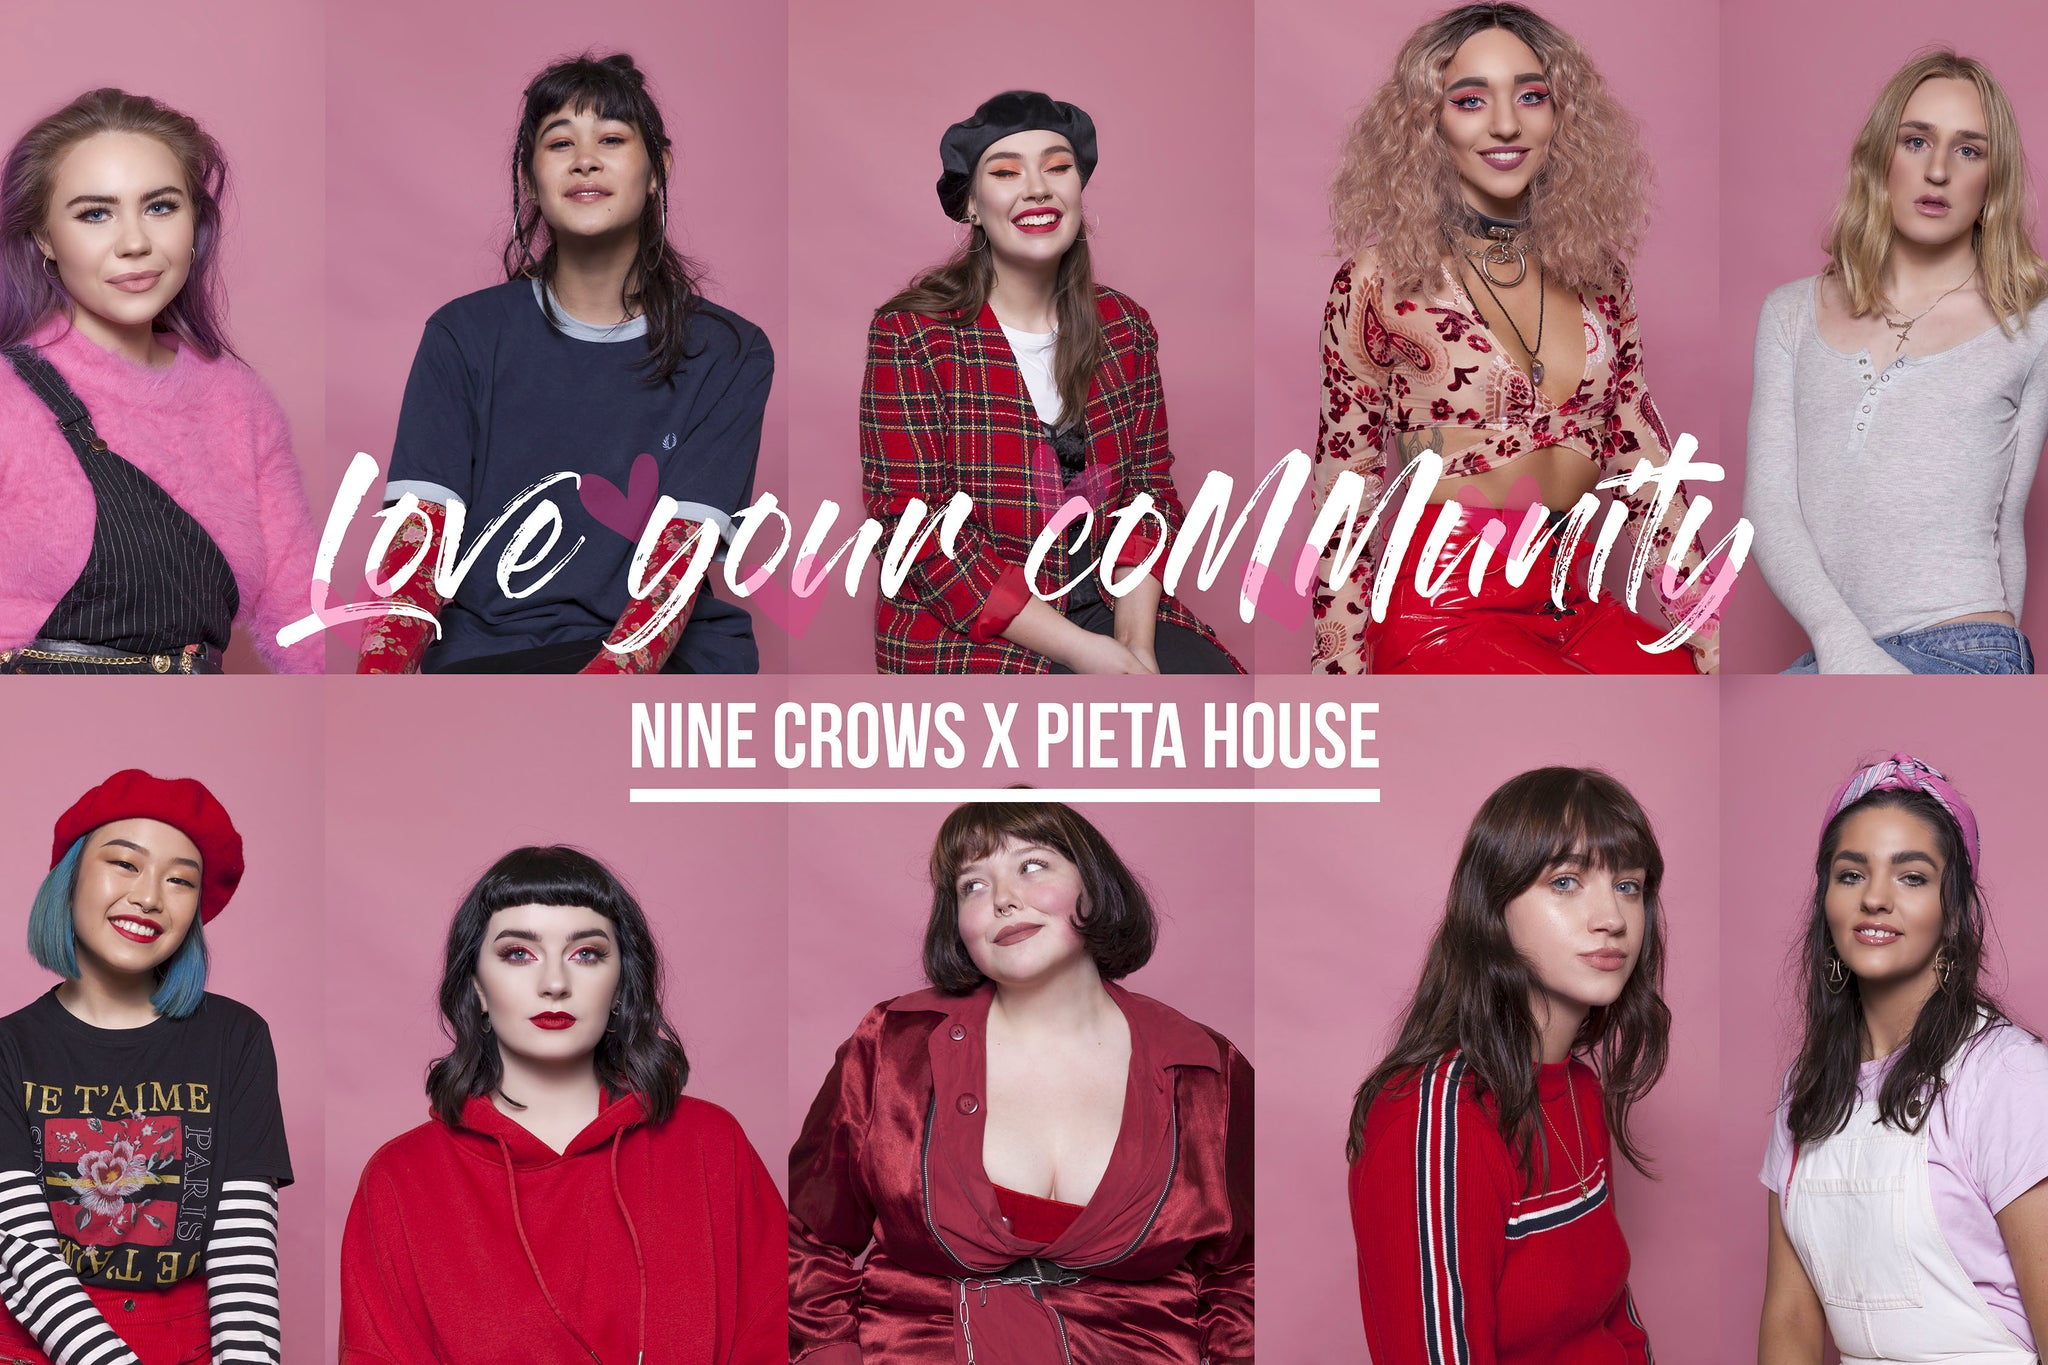 Love Your Community - Nine Crows X Pieta House